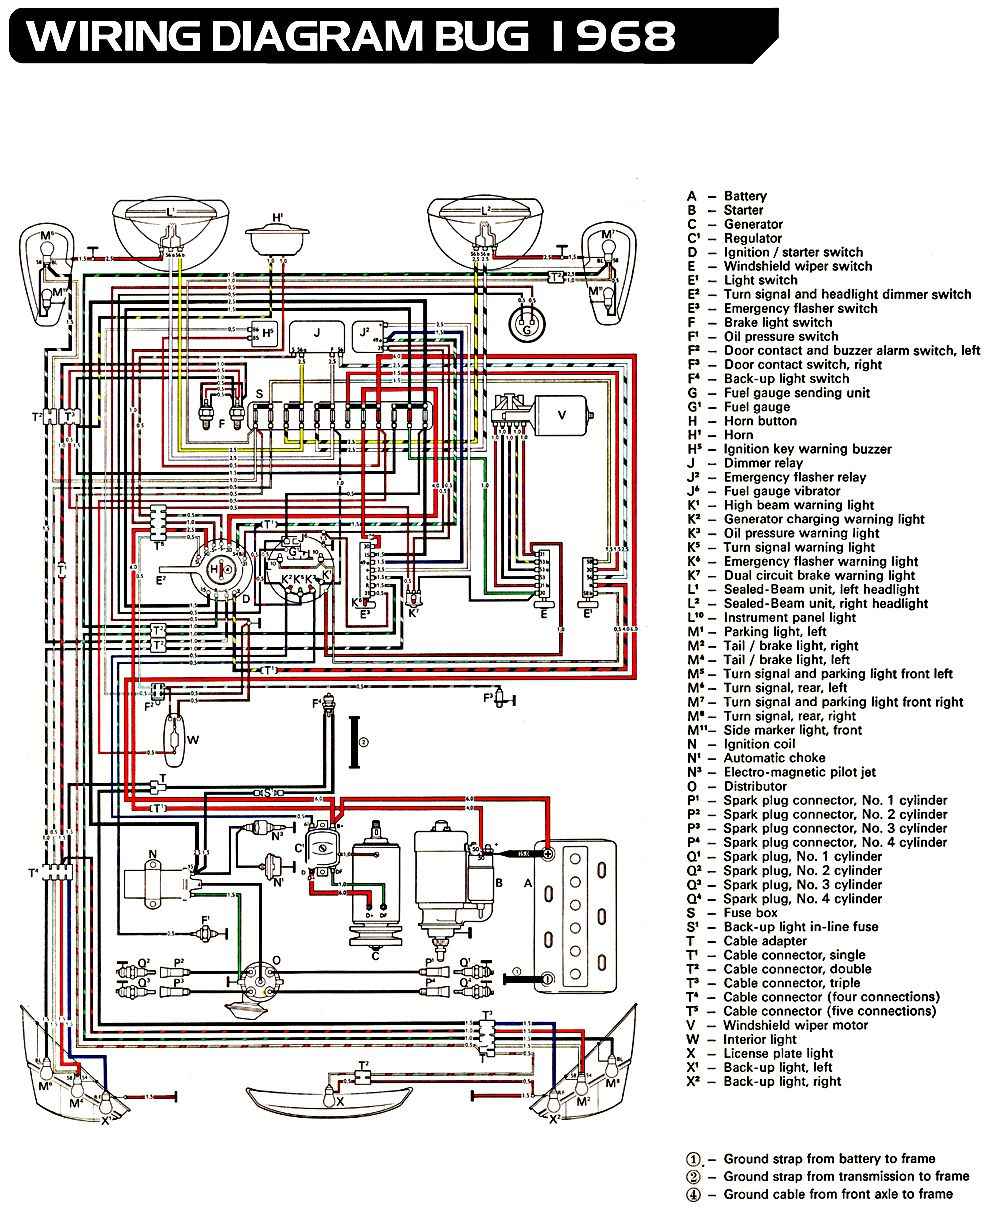 3a1908112d3826270ed5e3be362292bf vw bug ignition wiring diagram 73 vw wiring diagram free 1973 vw beetle wiring diagram at readyjetset.co